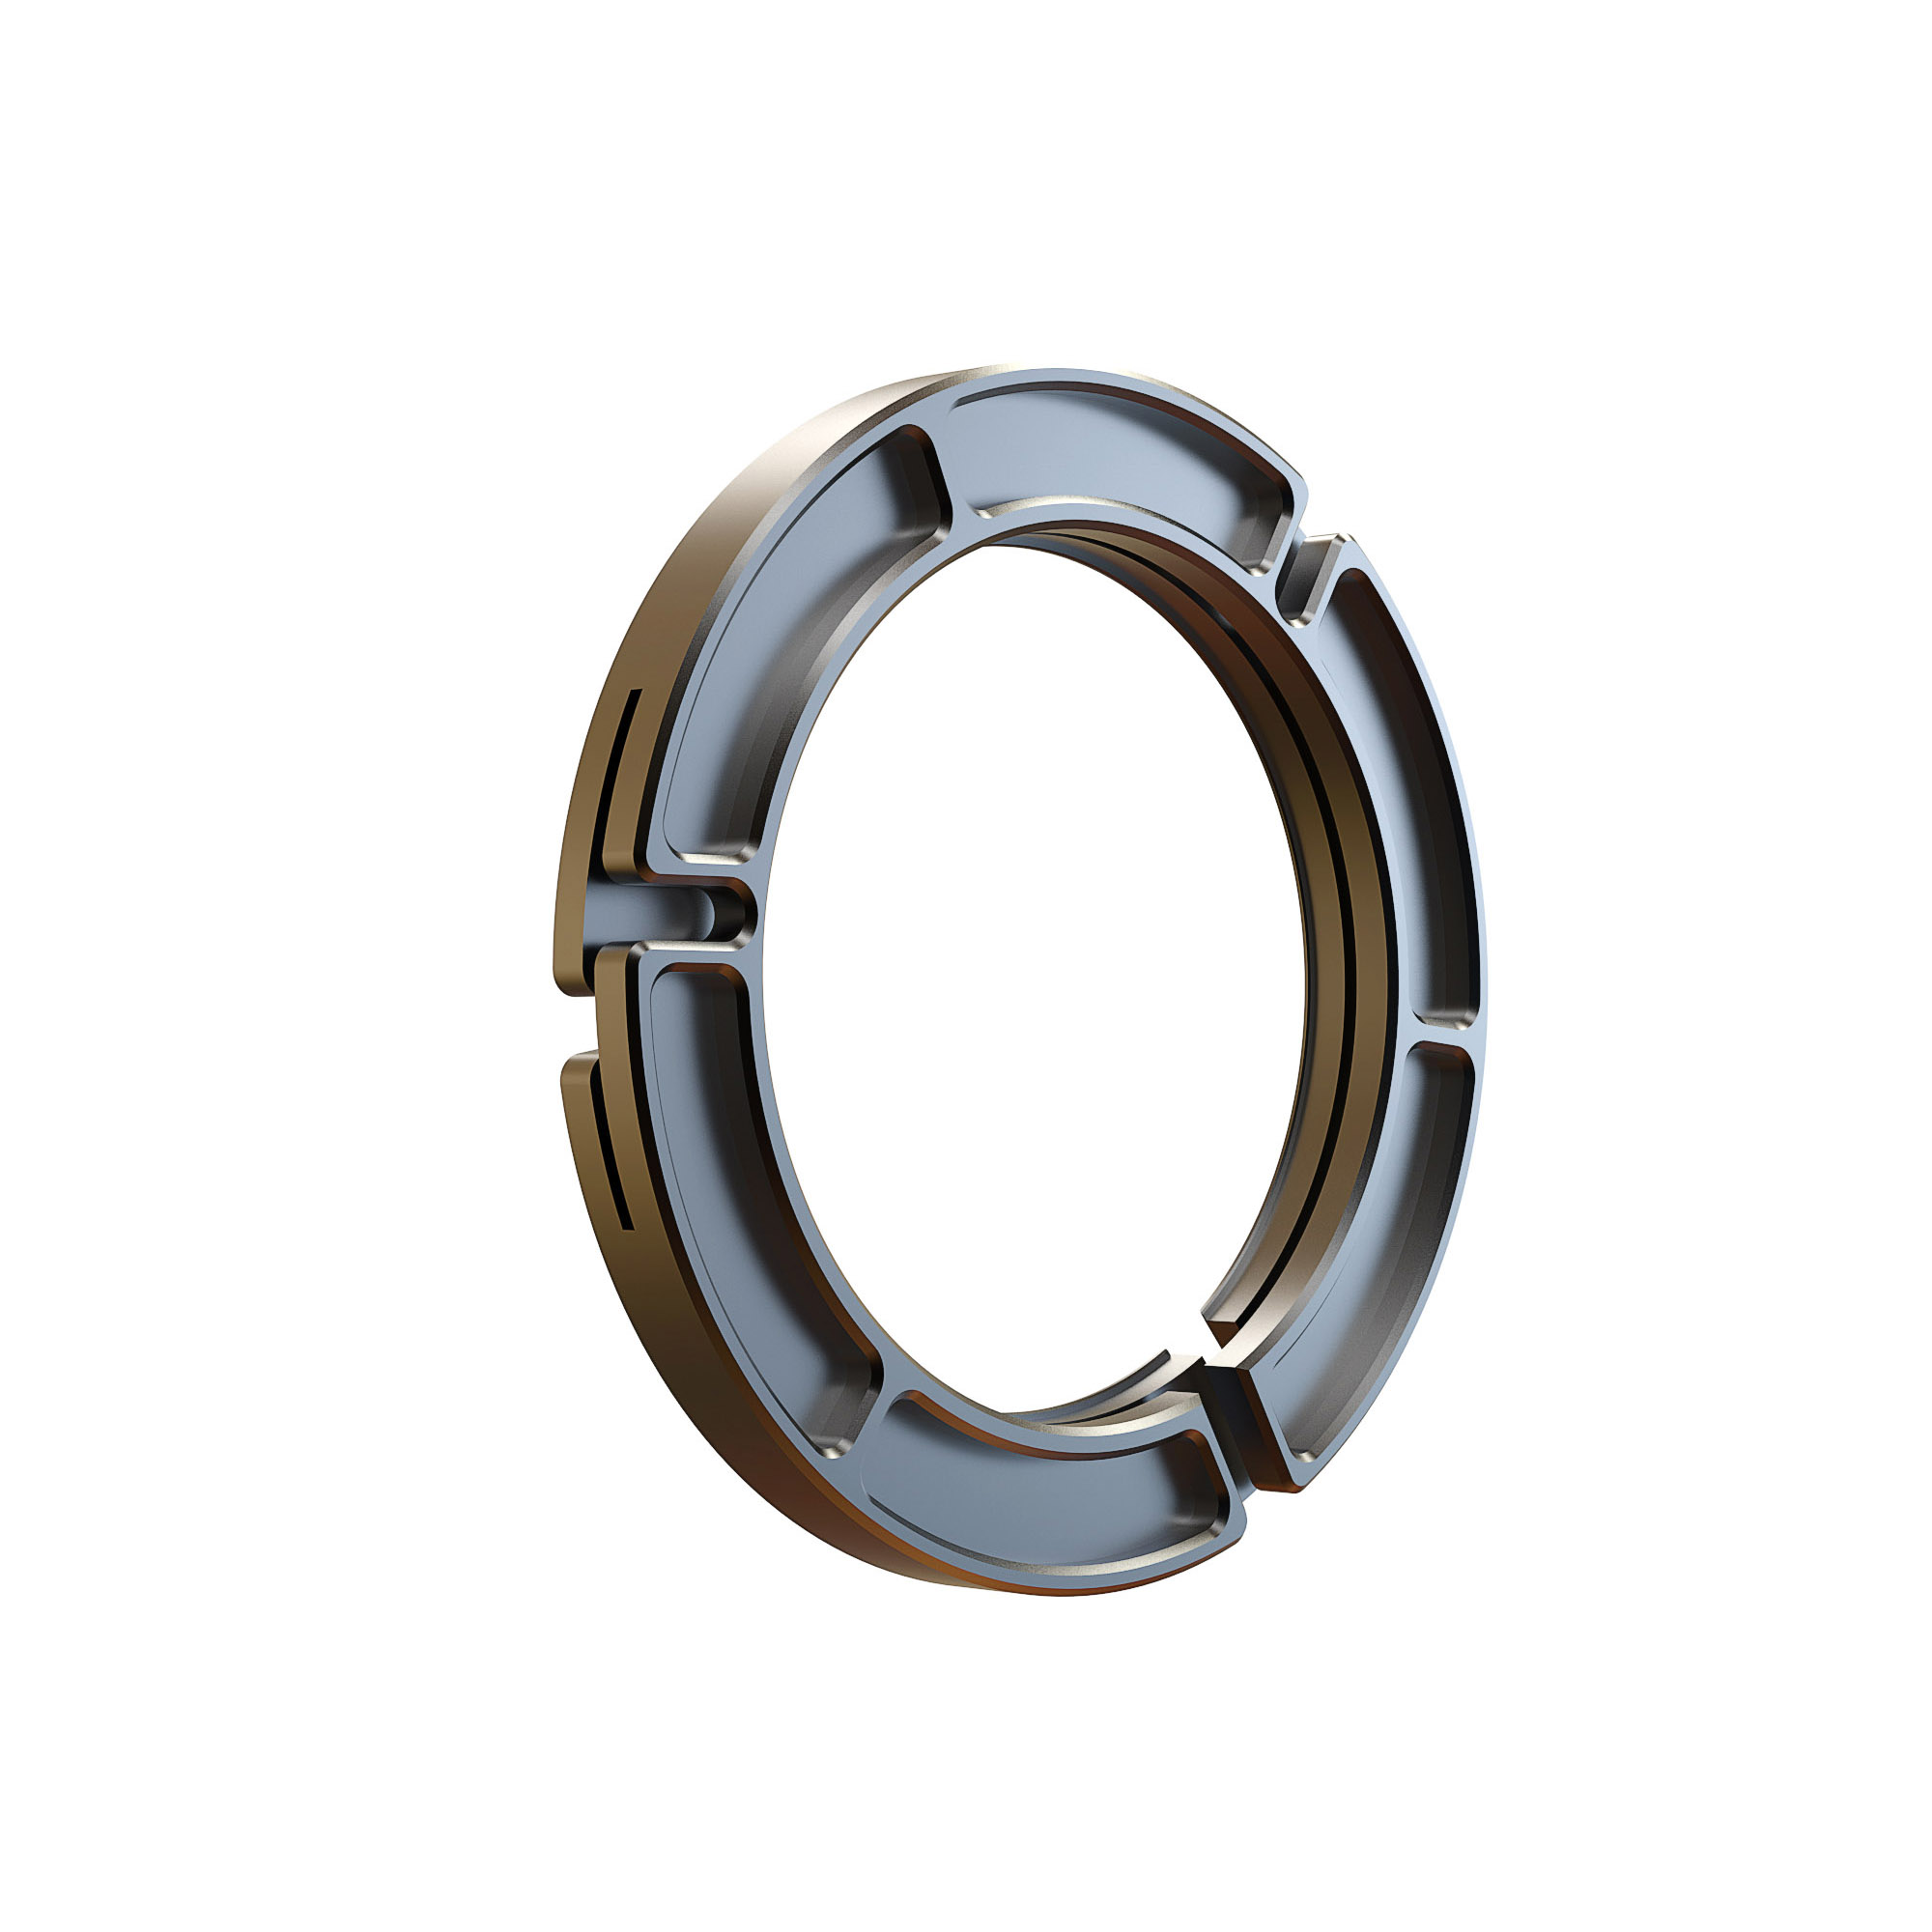 B1250 1053 143 104mm Clamp on Ring 1